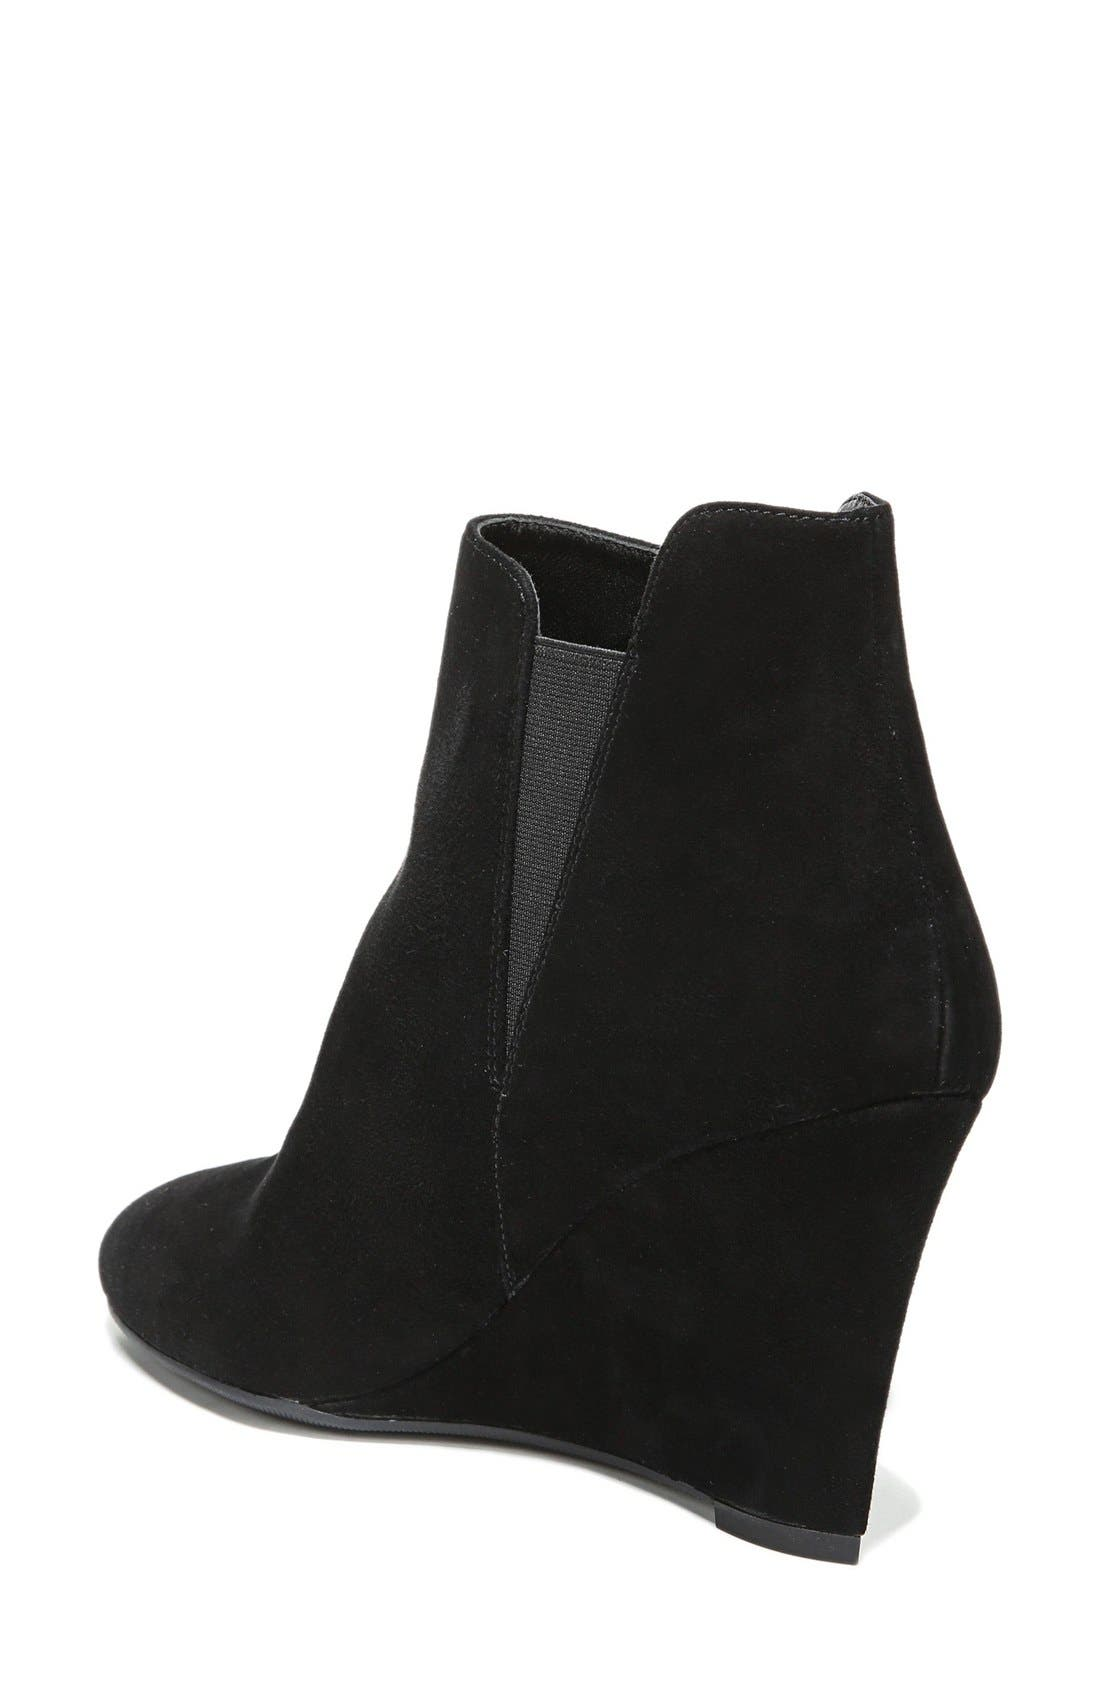 'Kenzie' Wedge Bootie,                             Alternate thumbnail 2, color,                             002